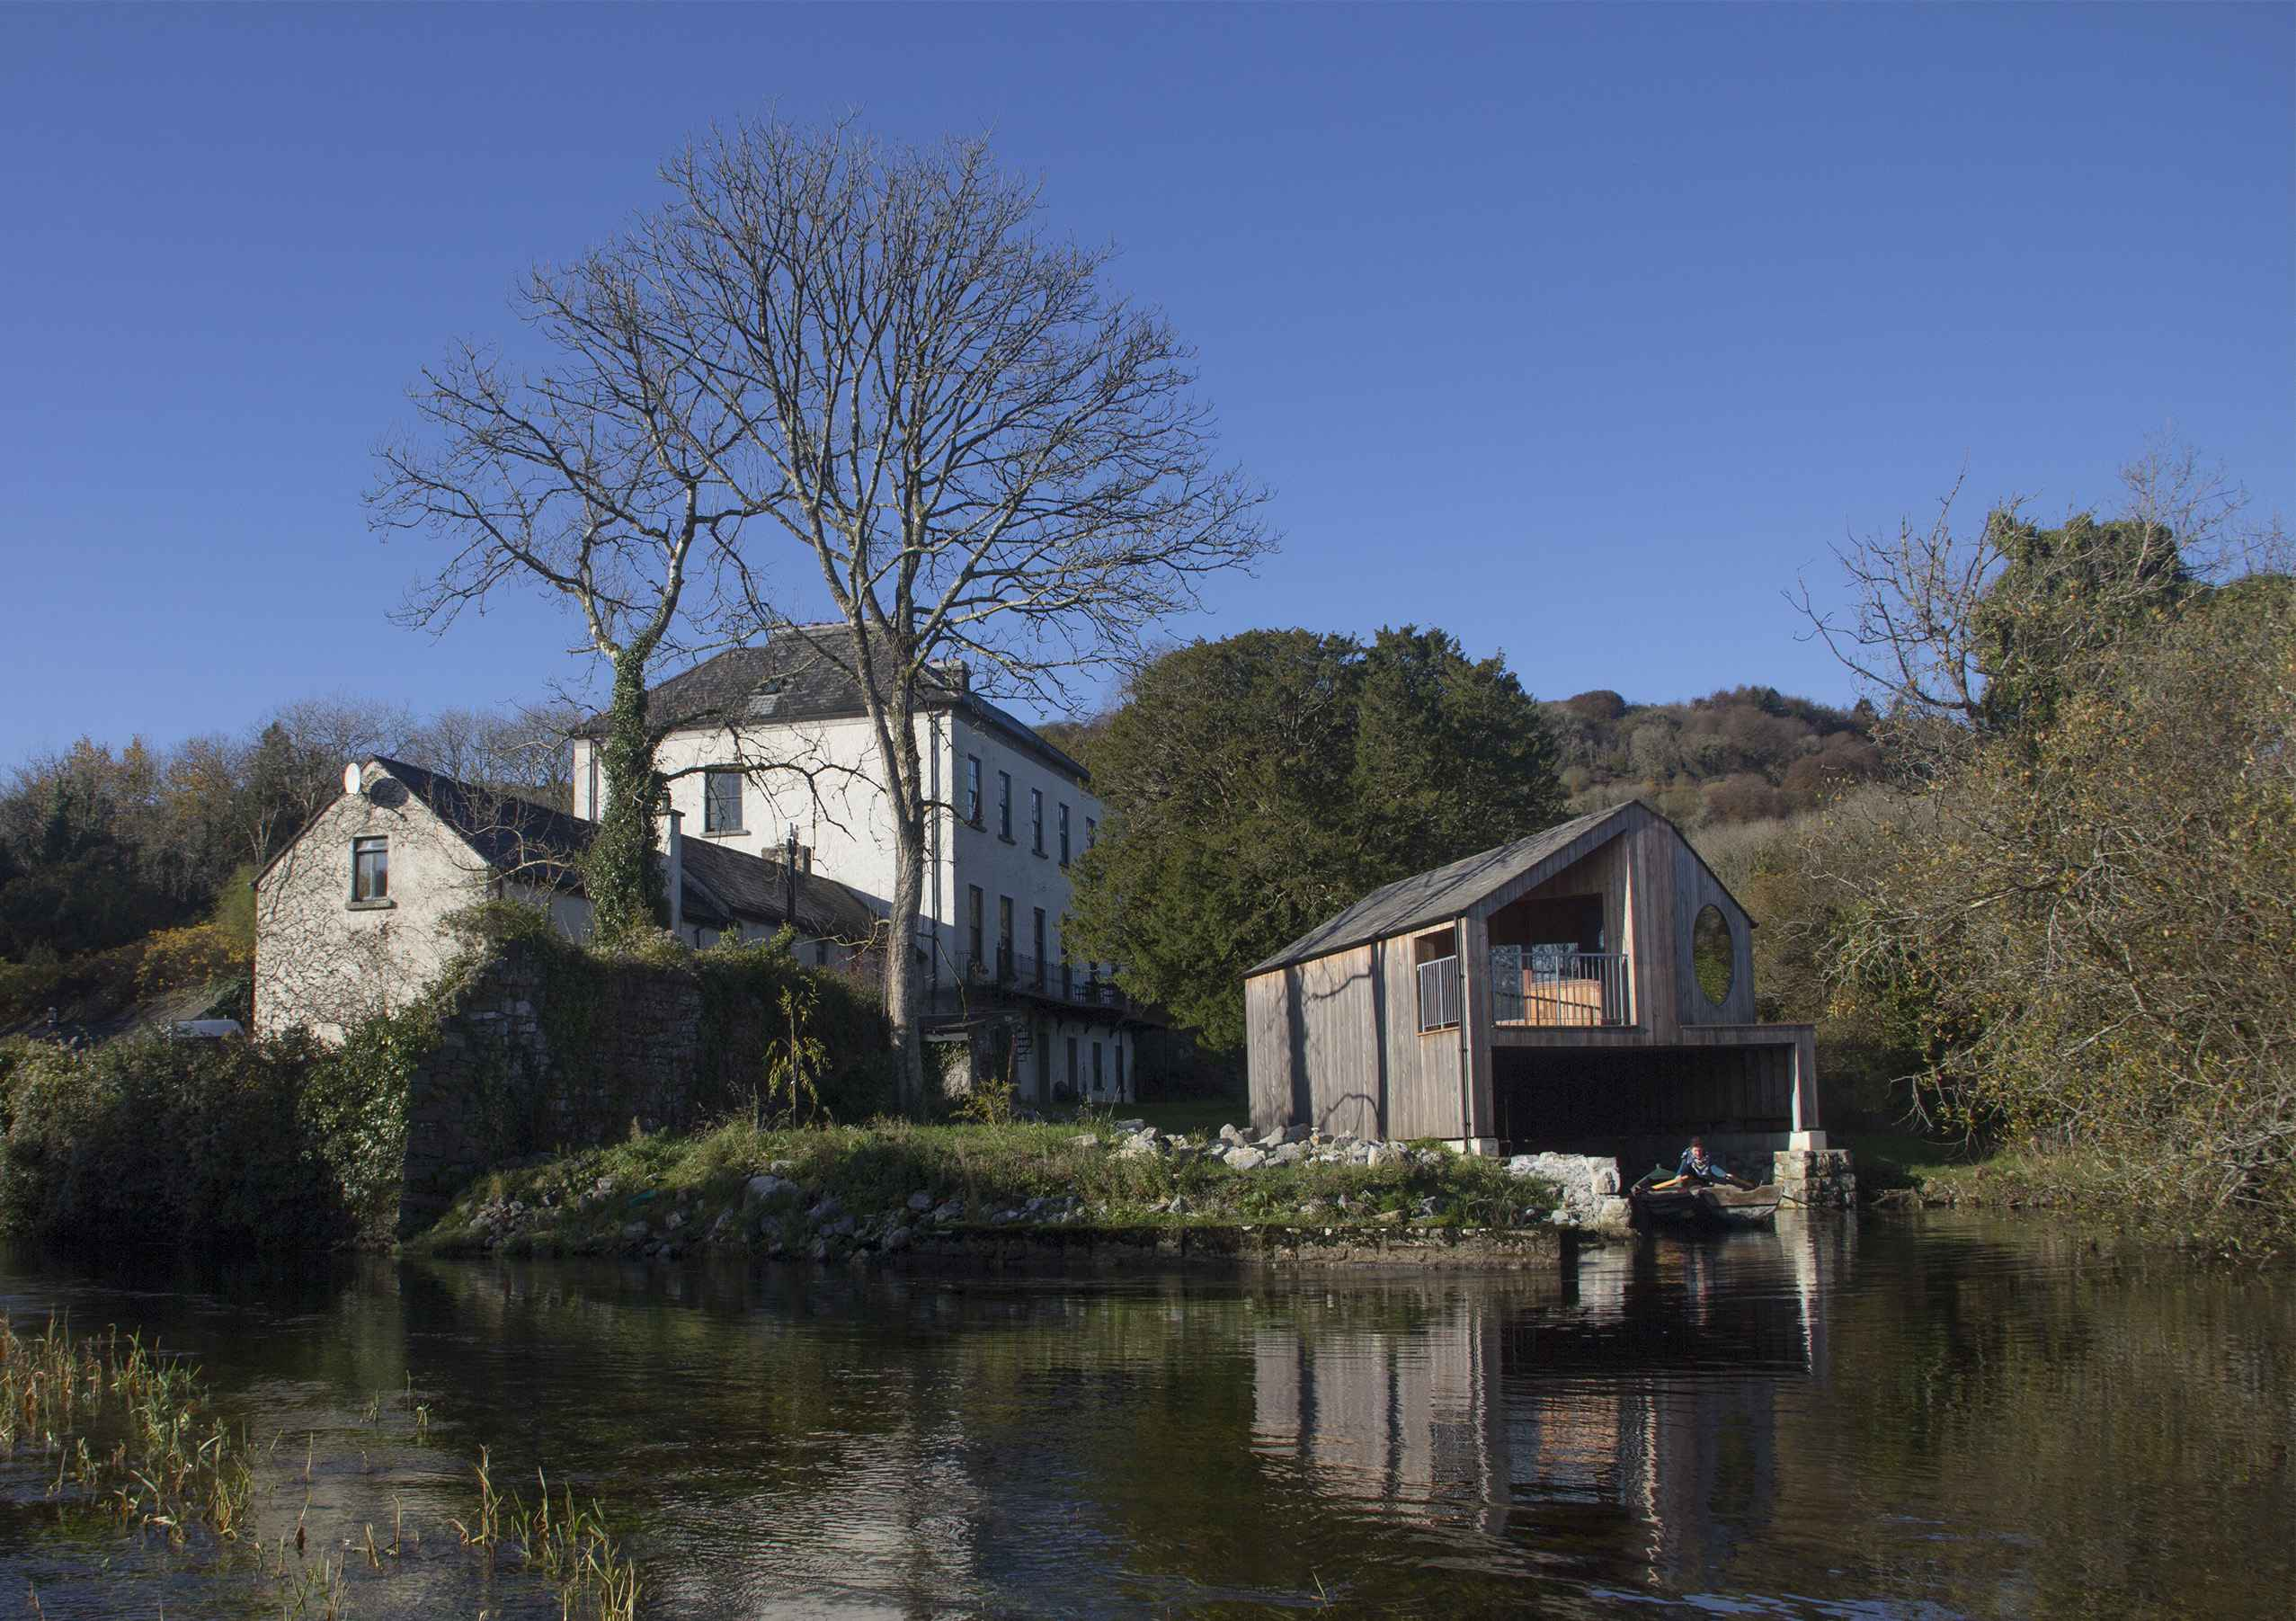 New Boathouse, Clifden House, Corofin, Co. Clare